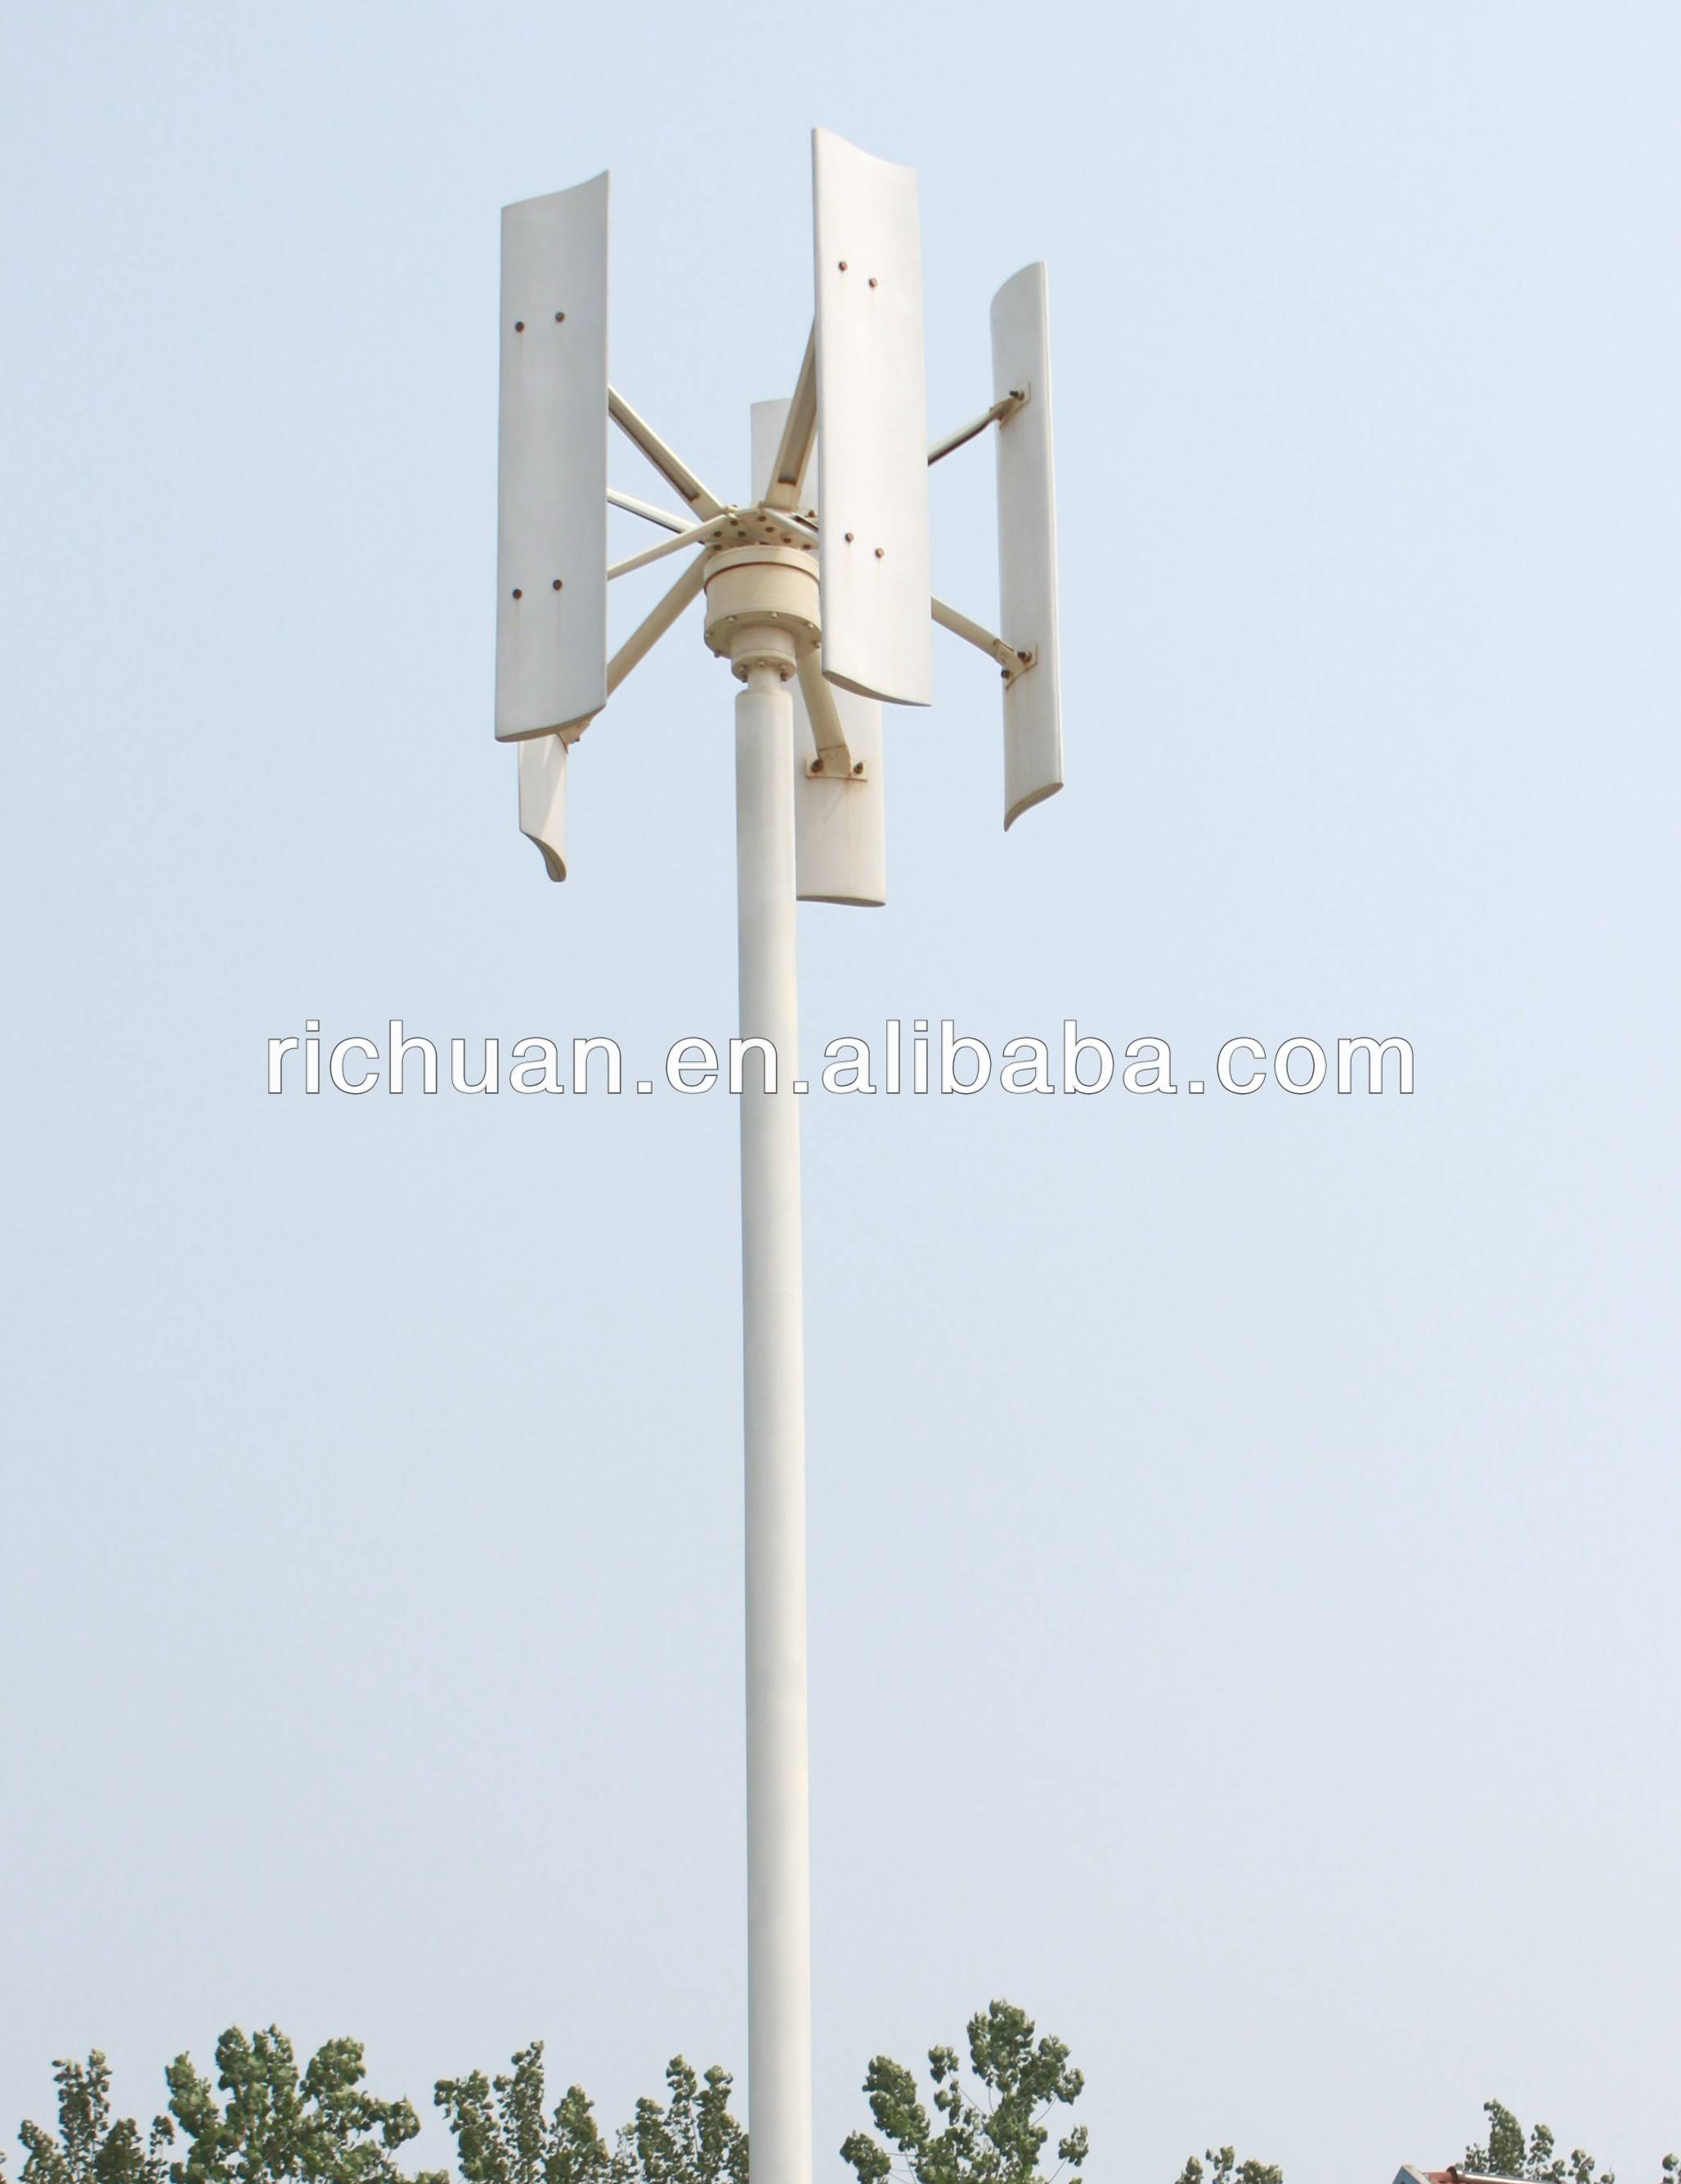 China Vertical Axis Wind Turbine 1kw China Vertical Axis Wind